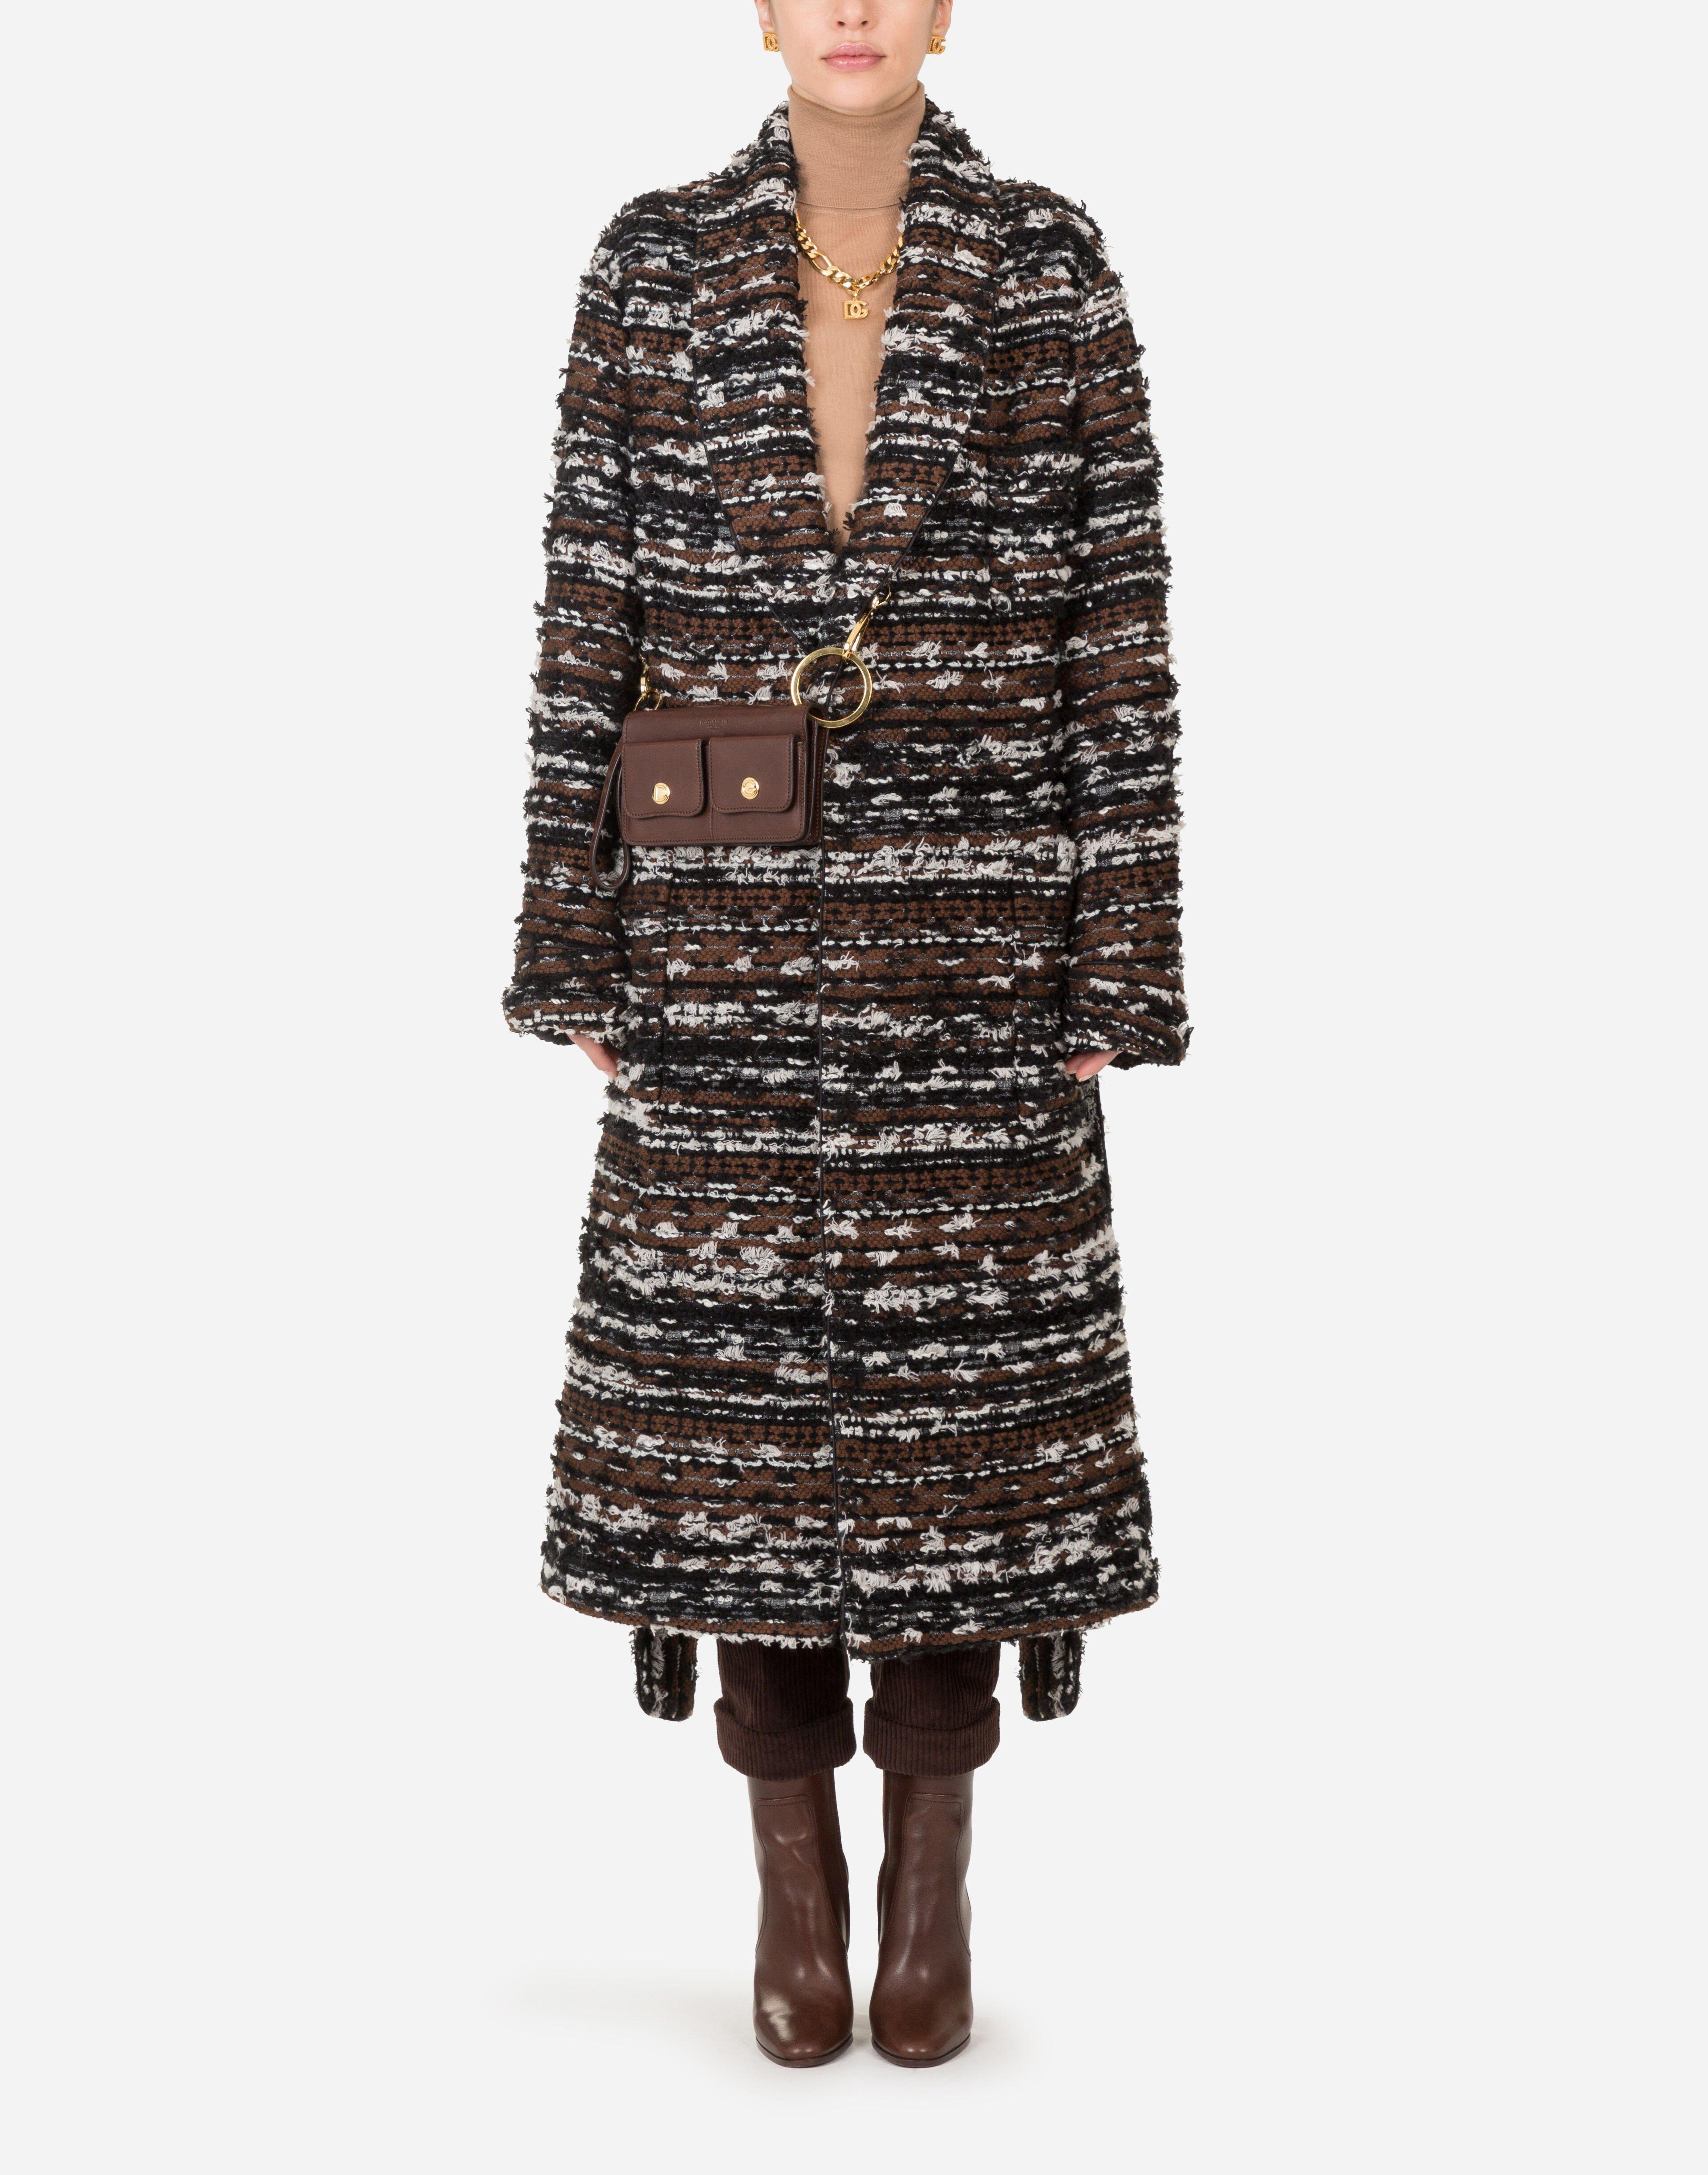 Robe-style jacket in tweed with belt